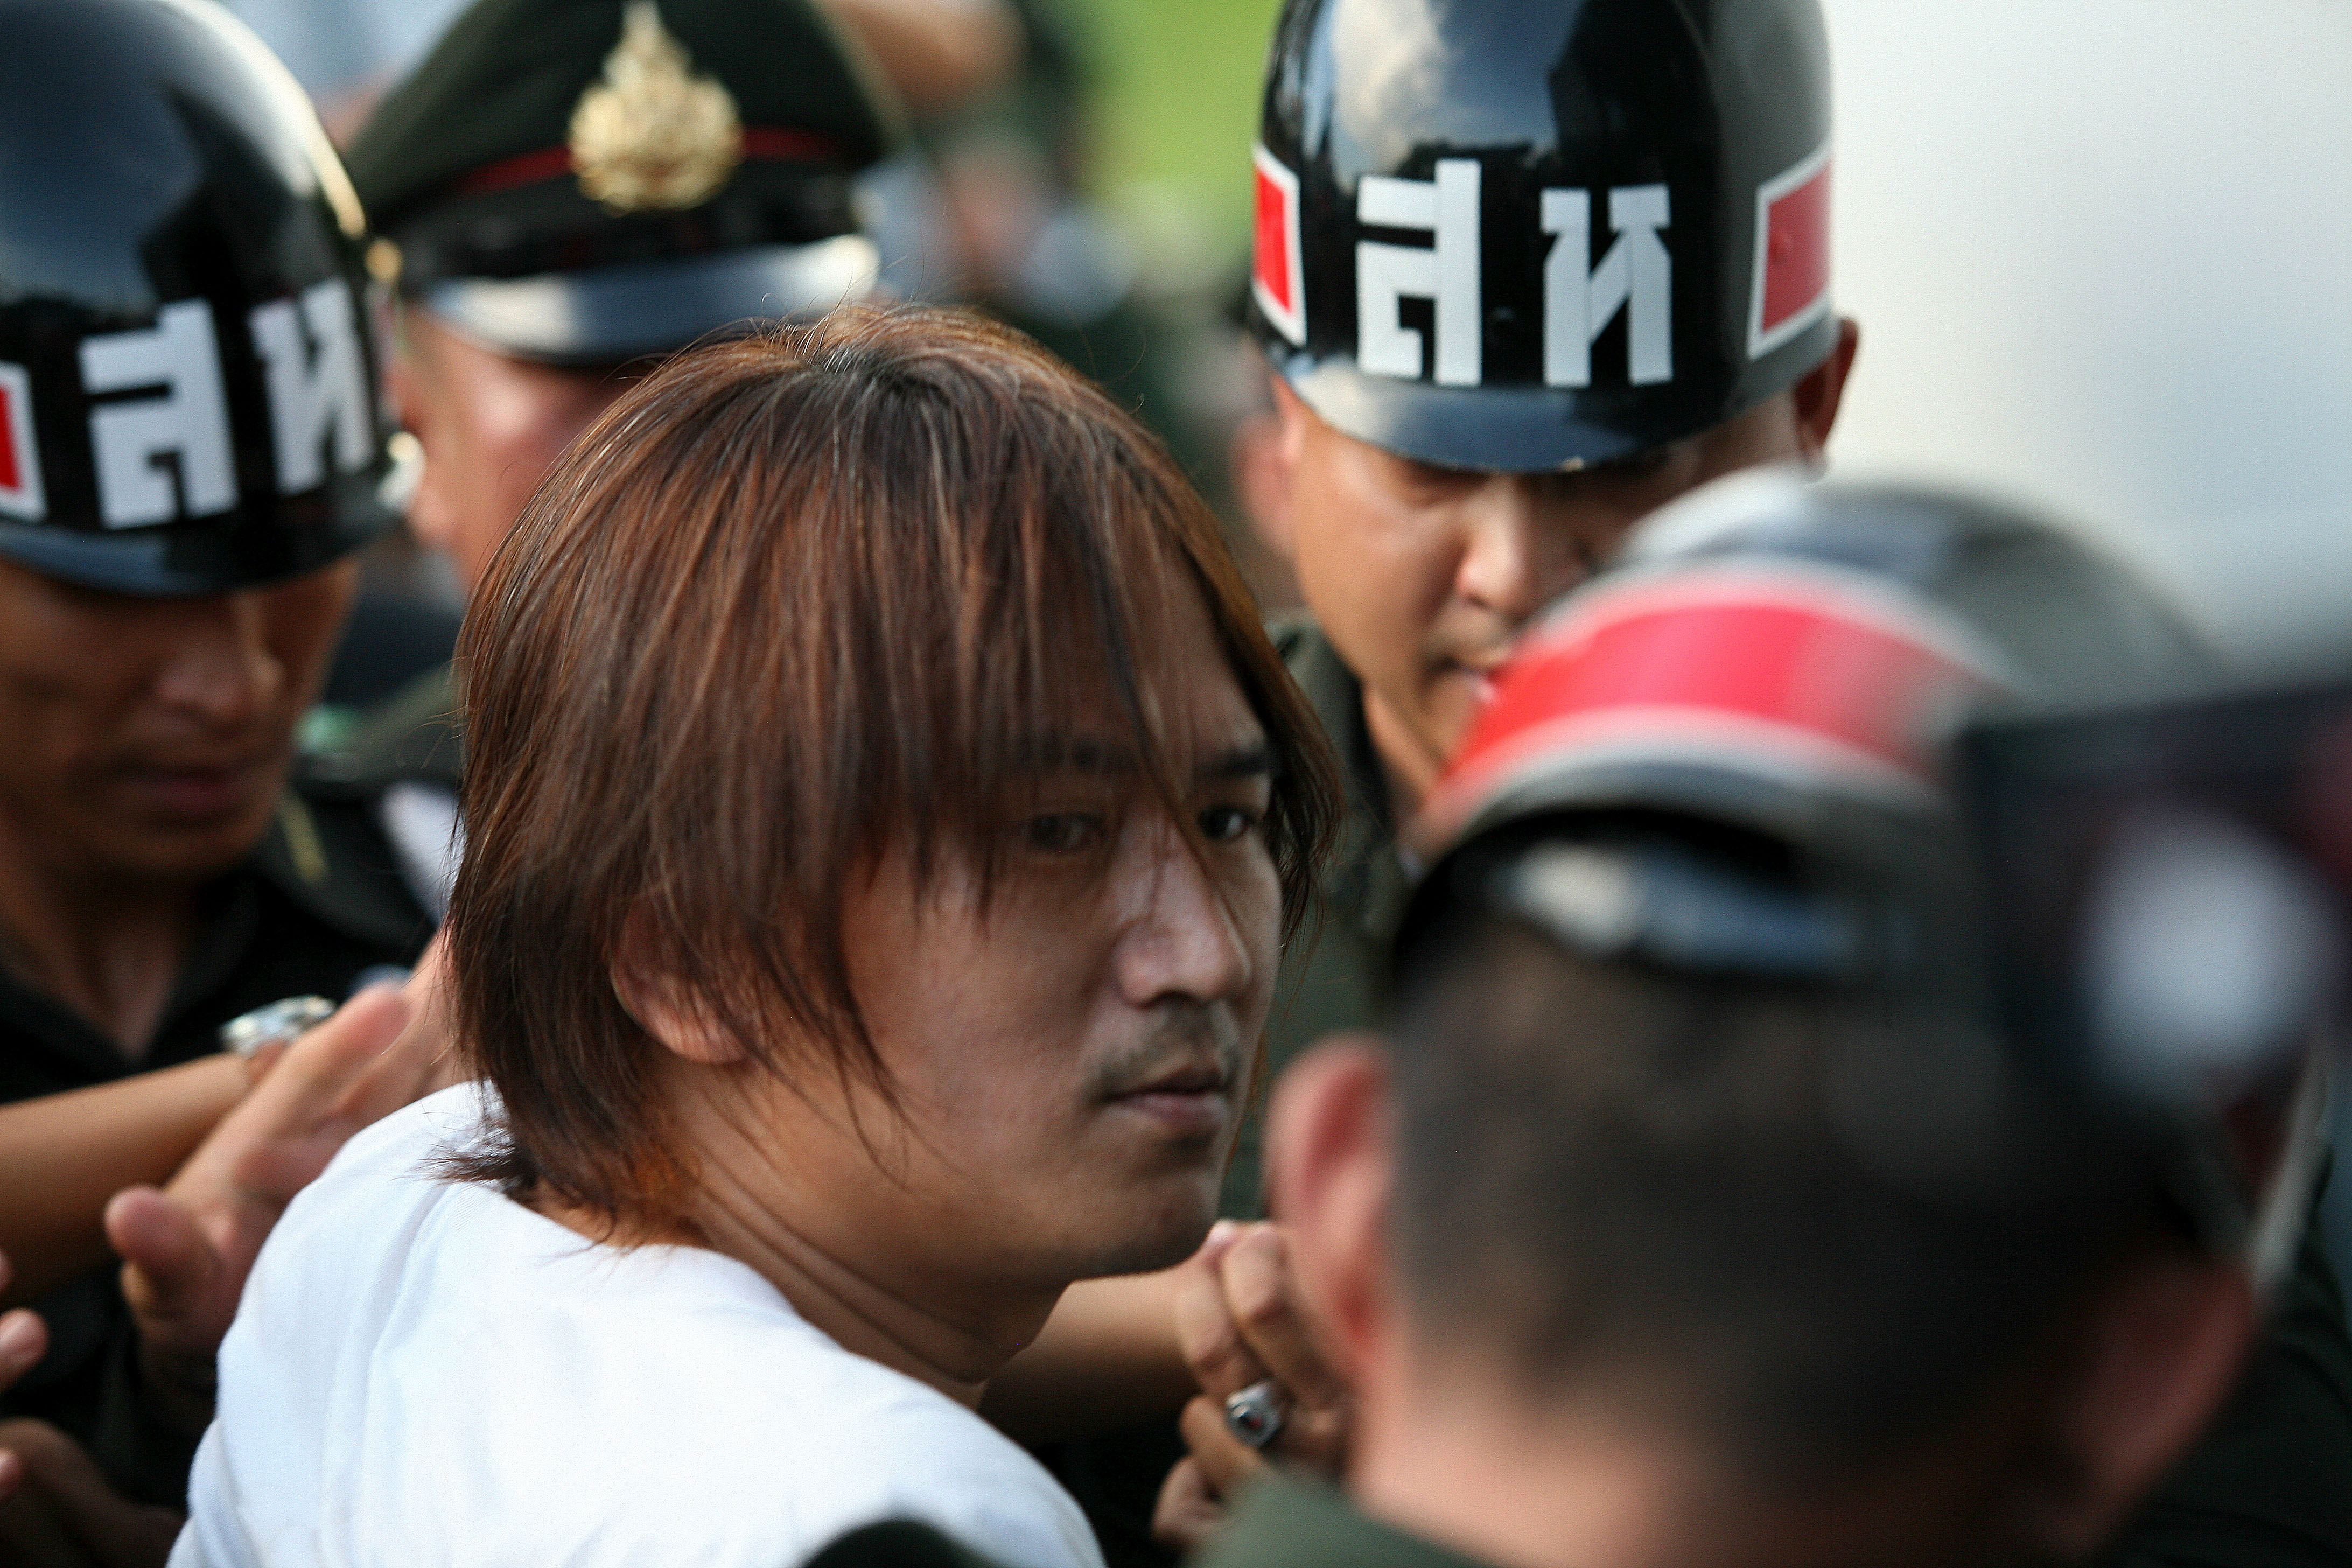 Thailand's Military Crackdown